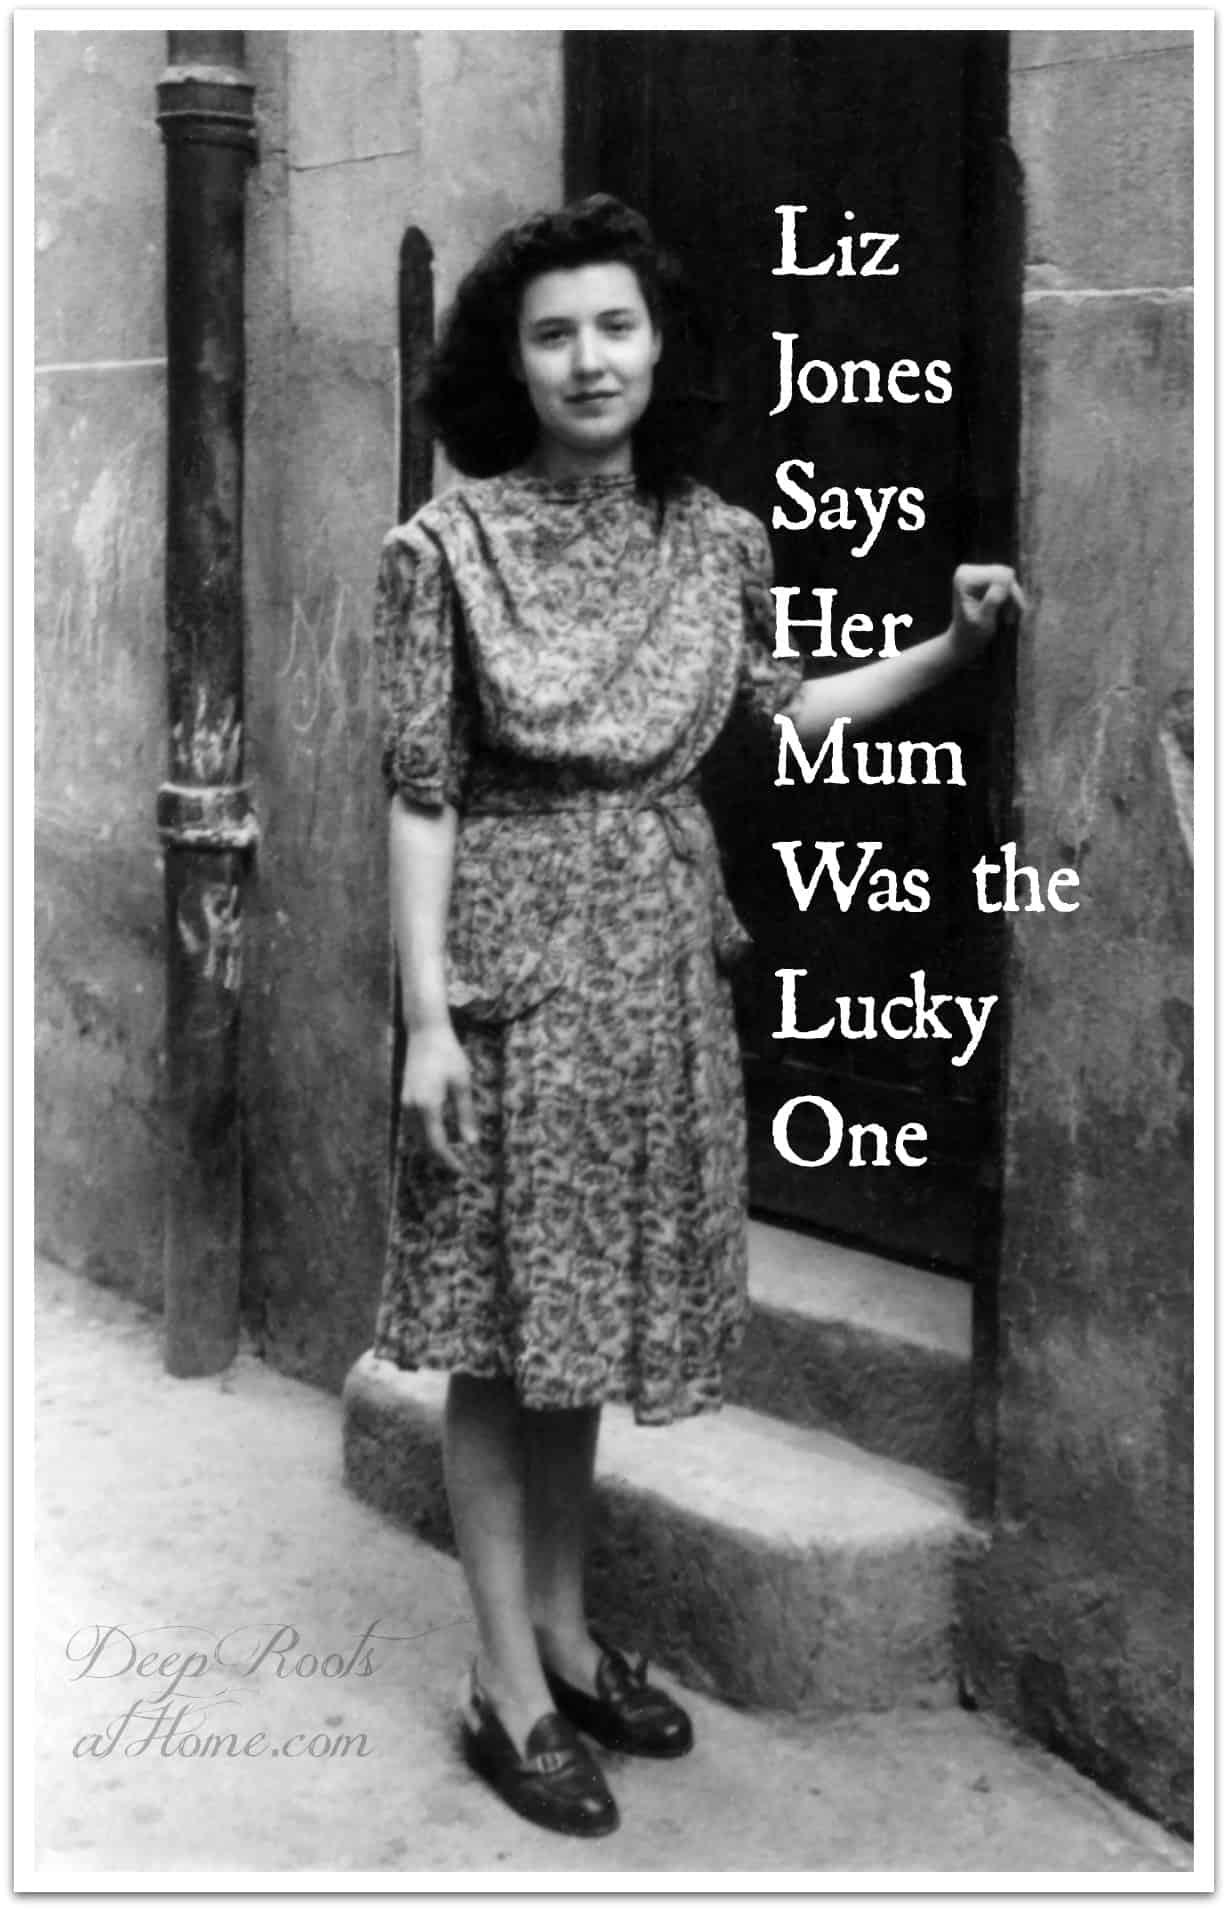 Liz Jones Says Her Old-Fashioned Mum Was the Lucky One. A young woman in vintage dress circa 1940.